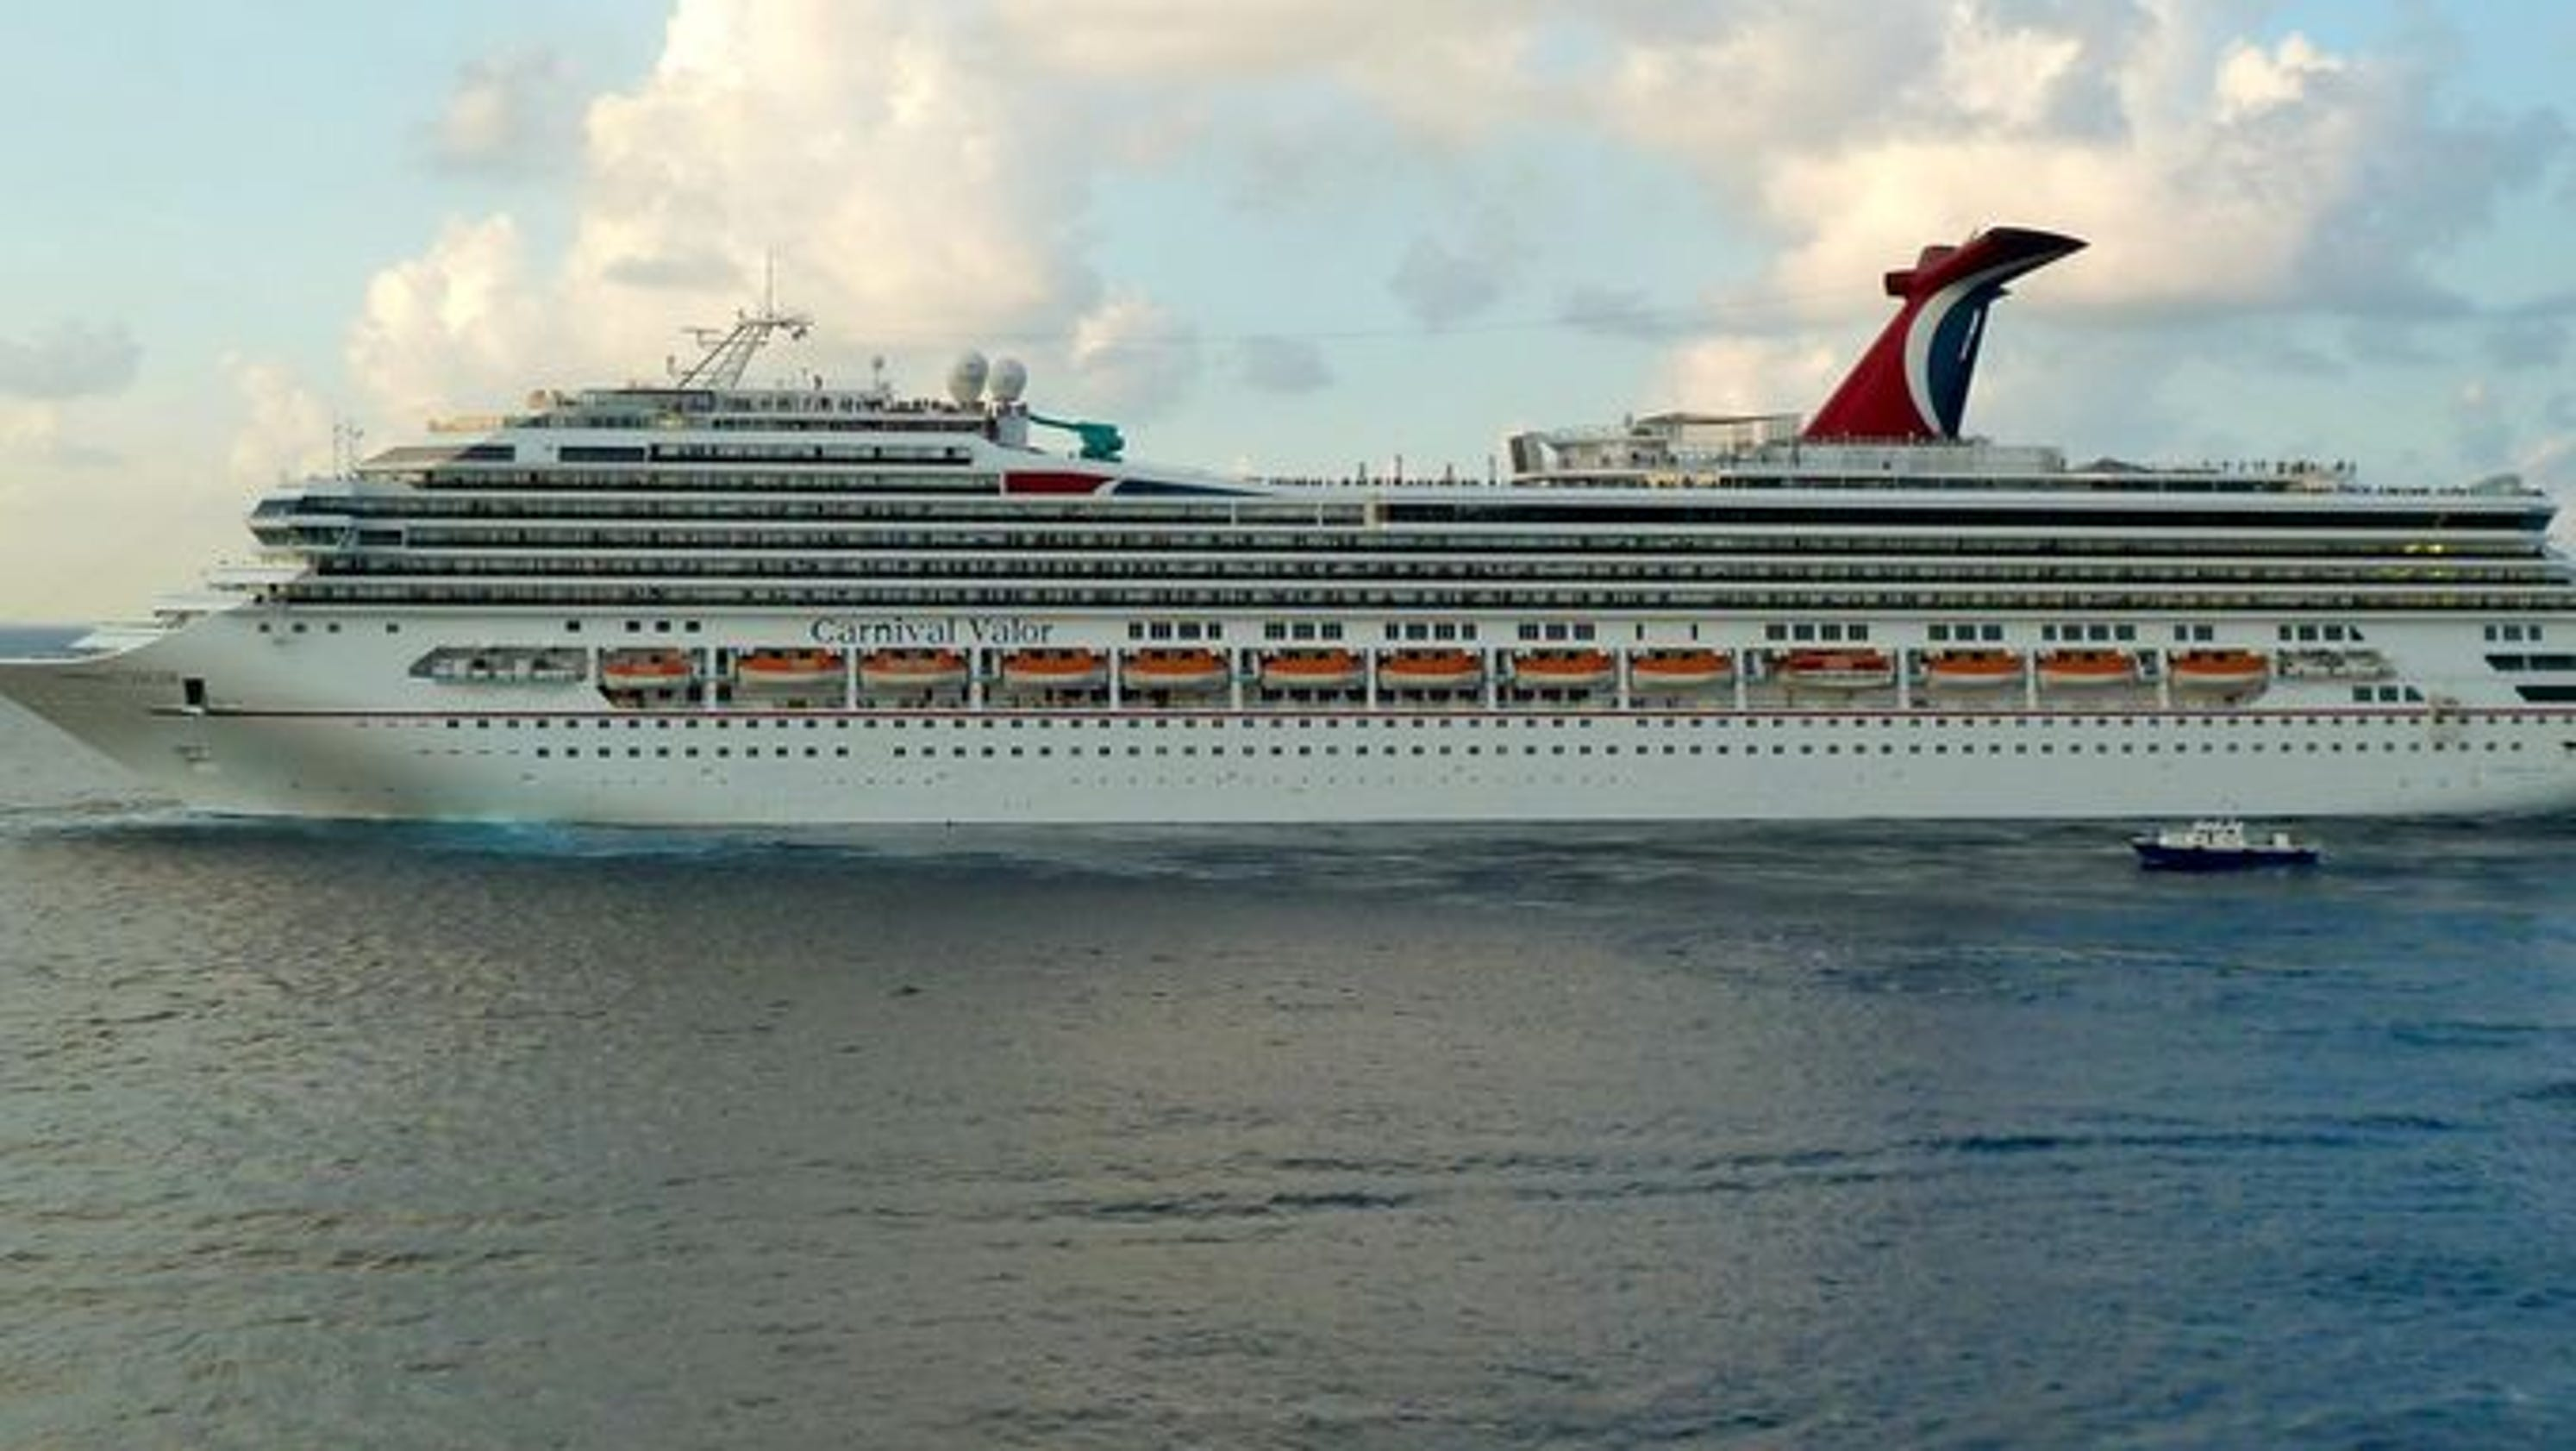 Carnival To Ban Smoking On Balconies - Smoking policy on cruise ships